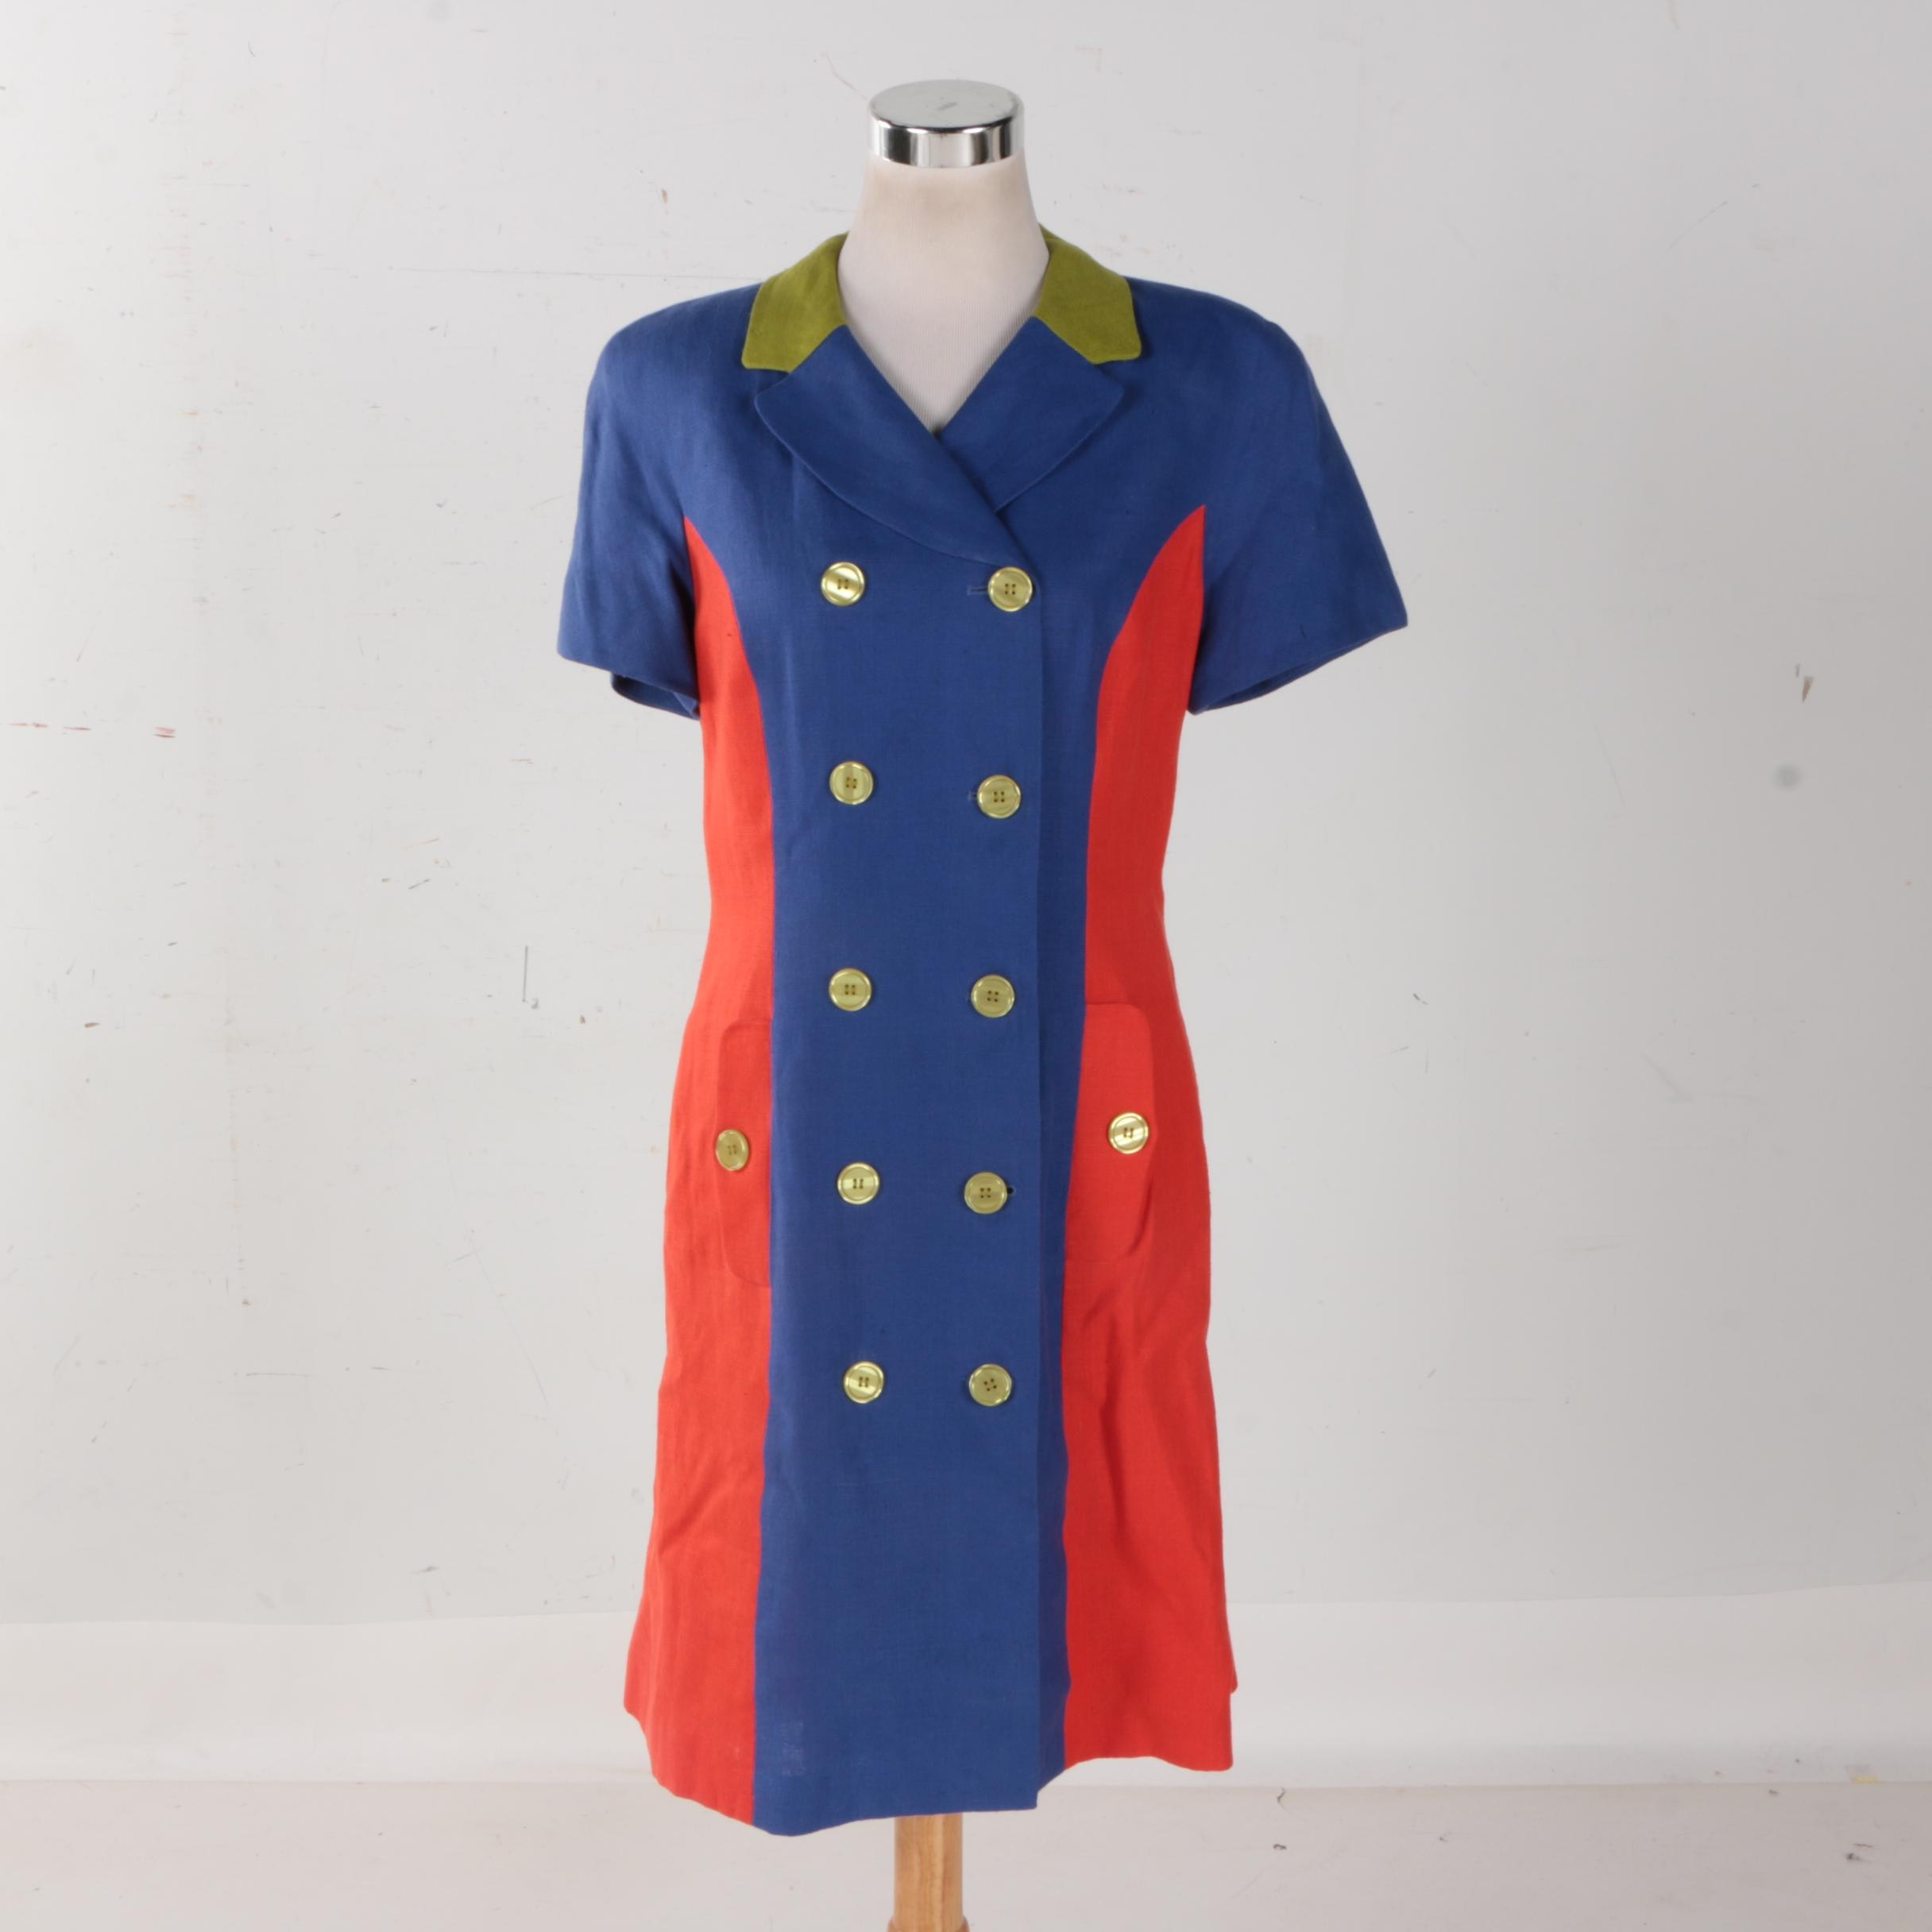 Blue and Red Trench Dress